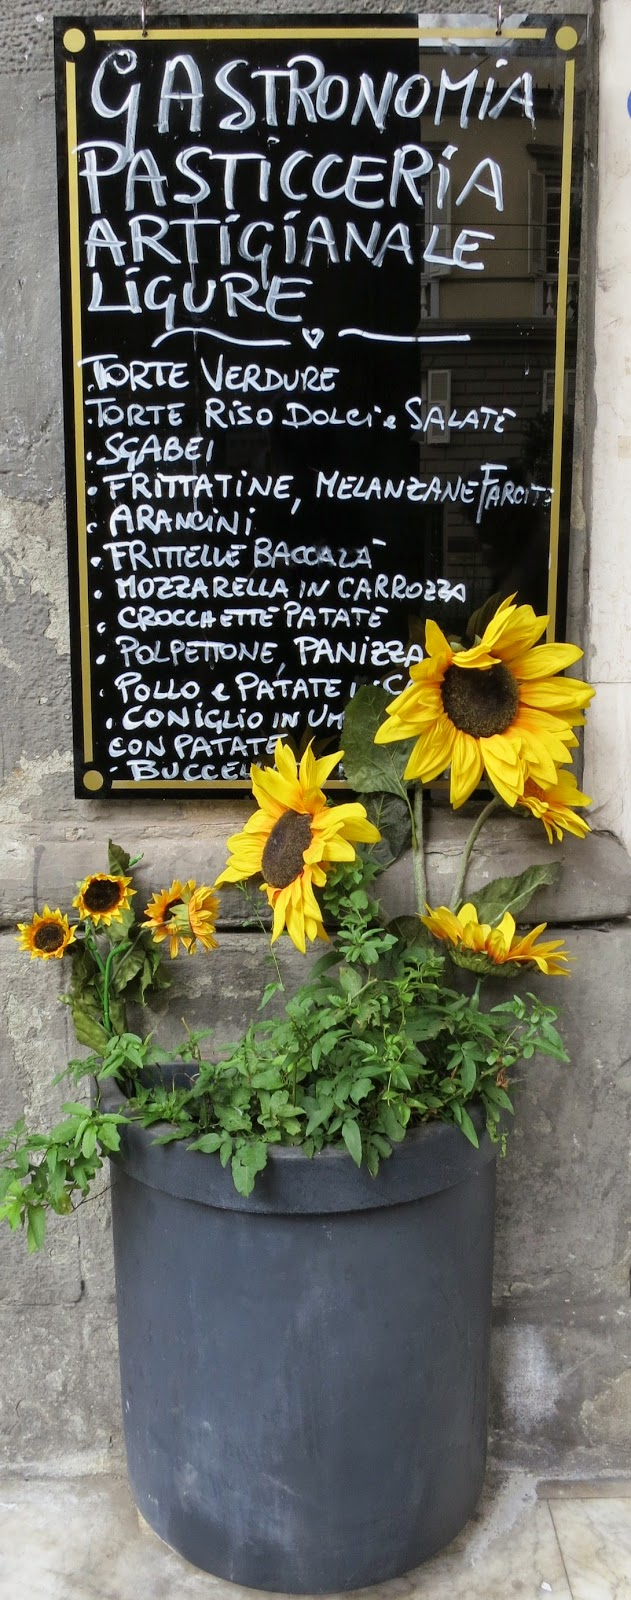 Portovenere Food Specialties Menu